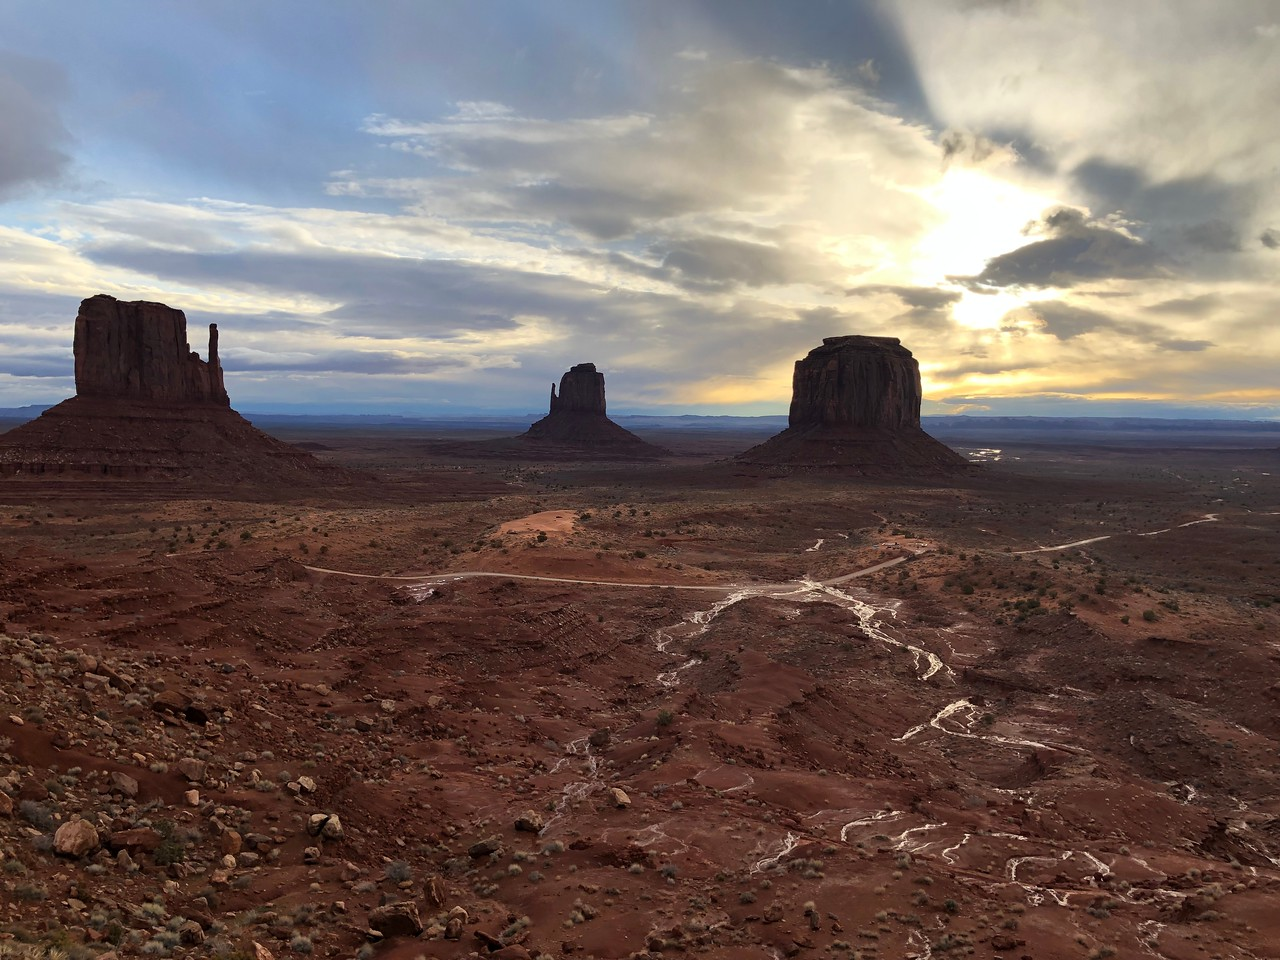 Adventure Across the Wide Open Spaces of the Southwest